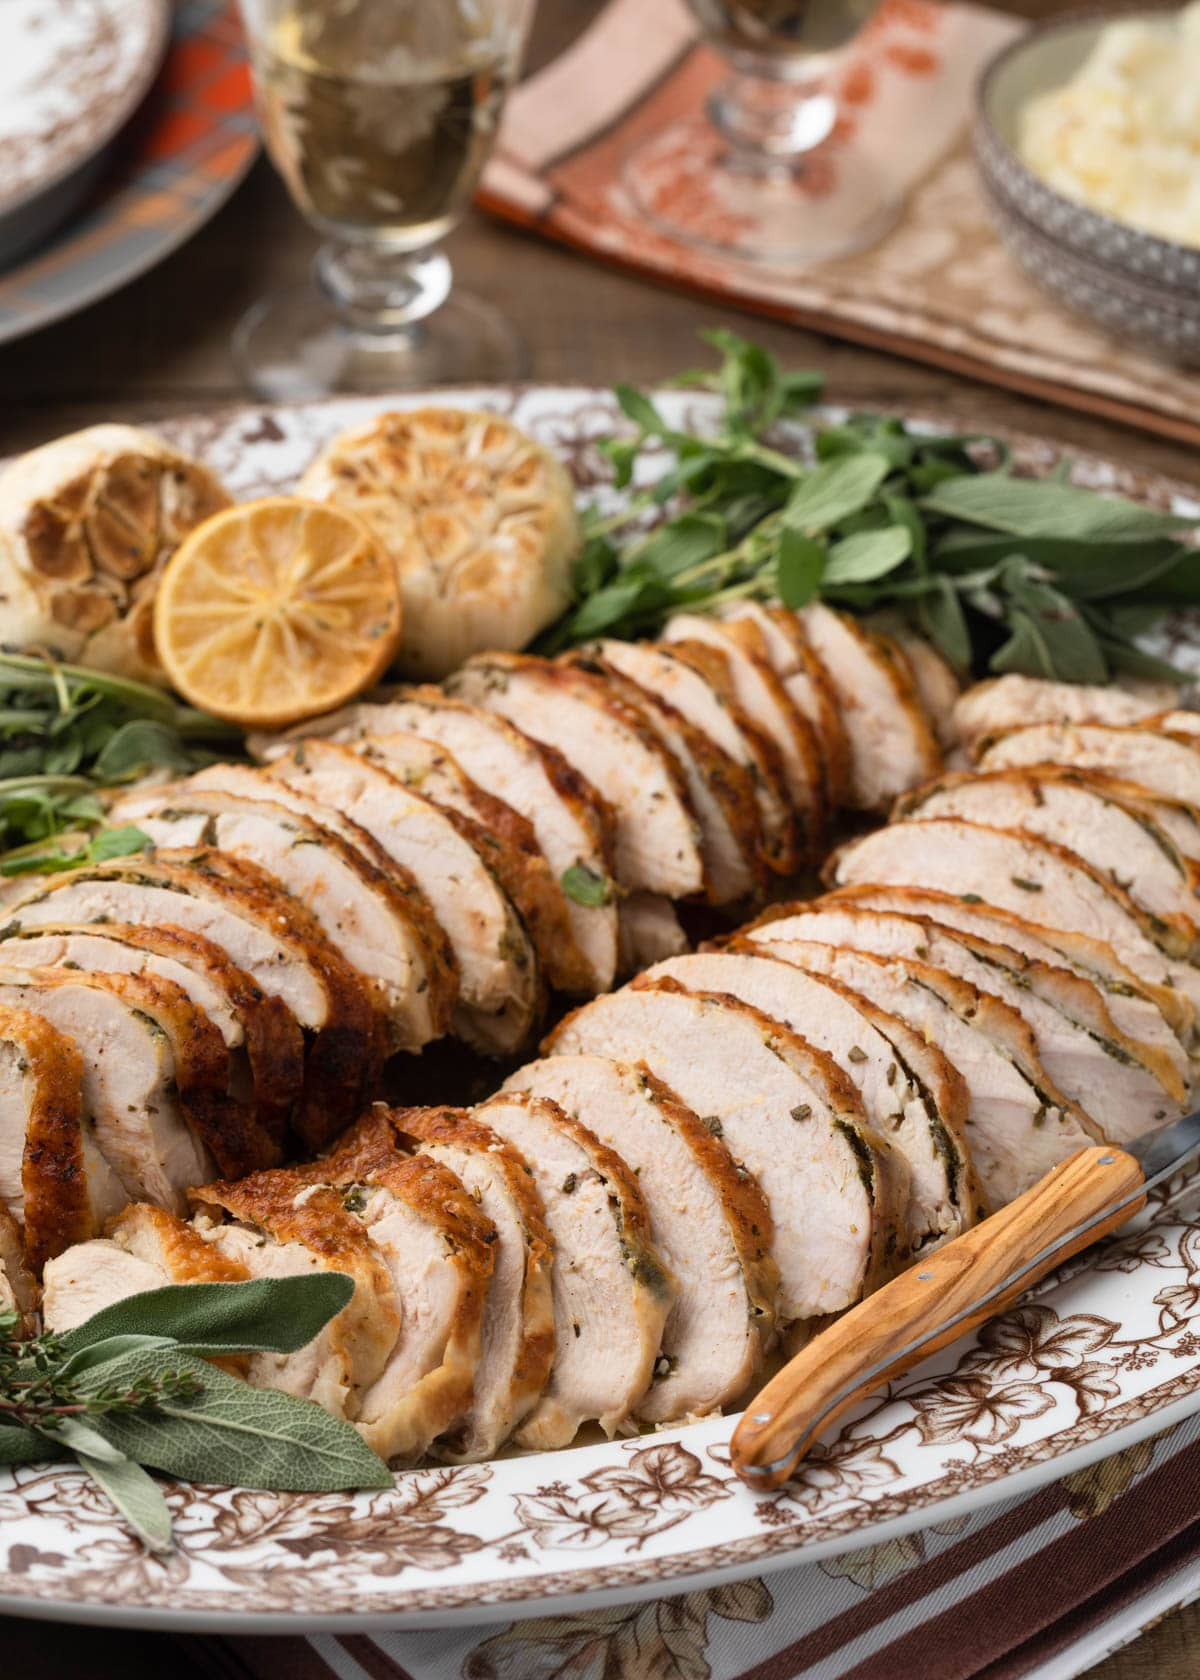 slices of herb roasted turkey breast on a platter with herbs, roasted lemon, and garlic